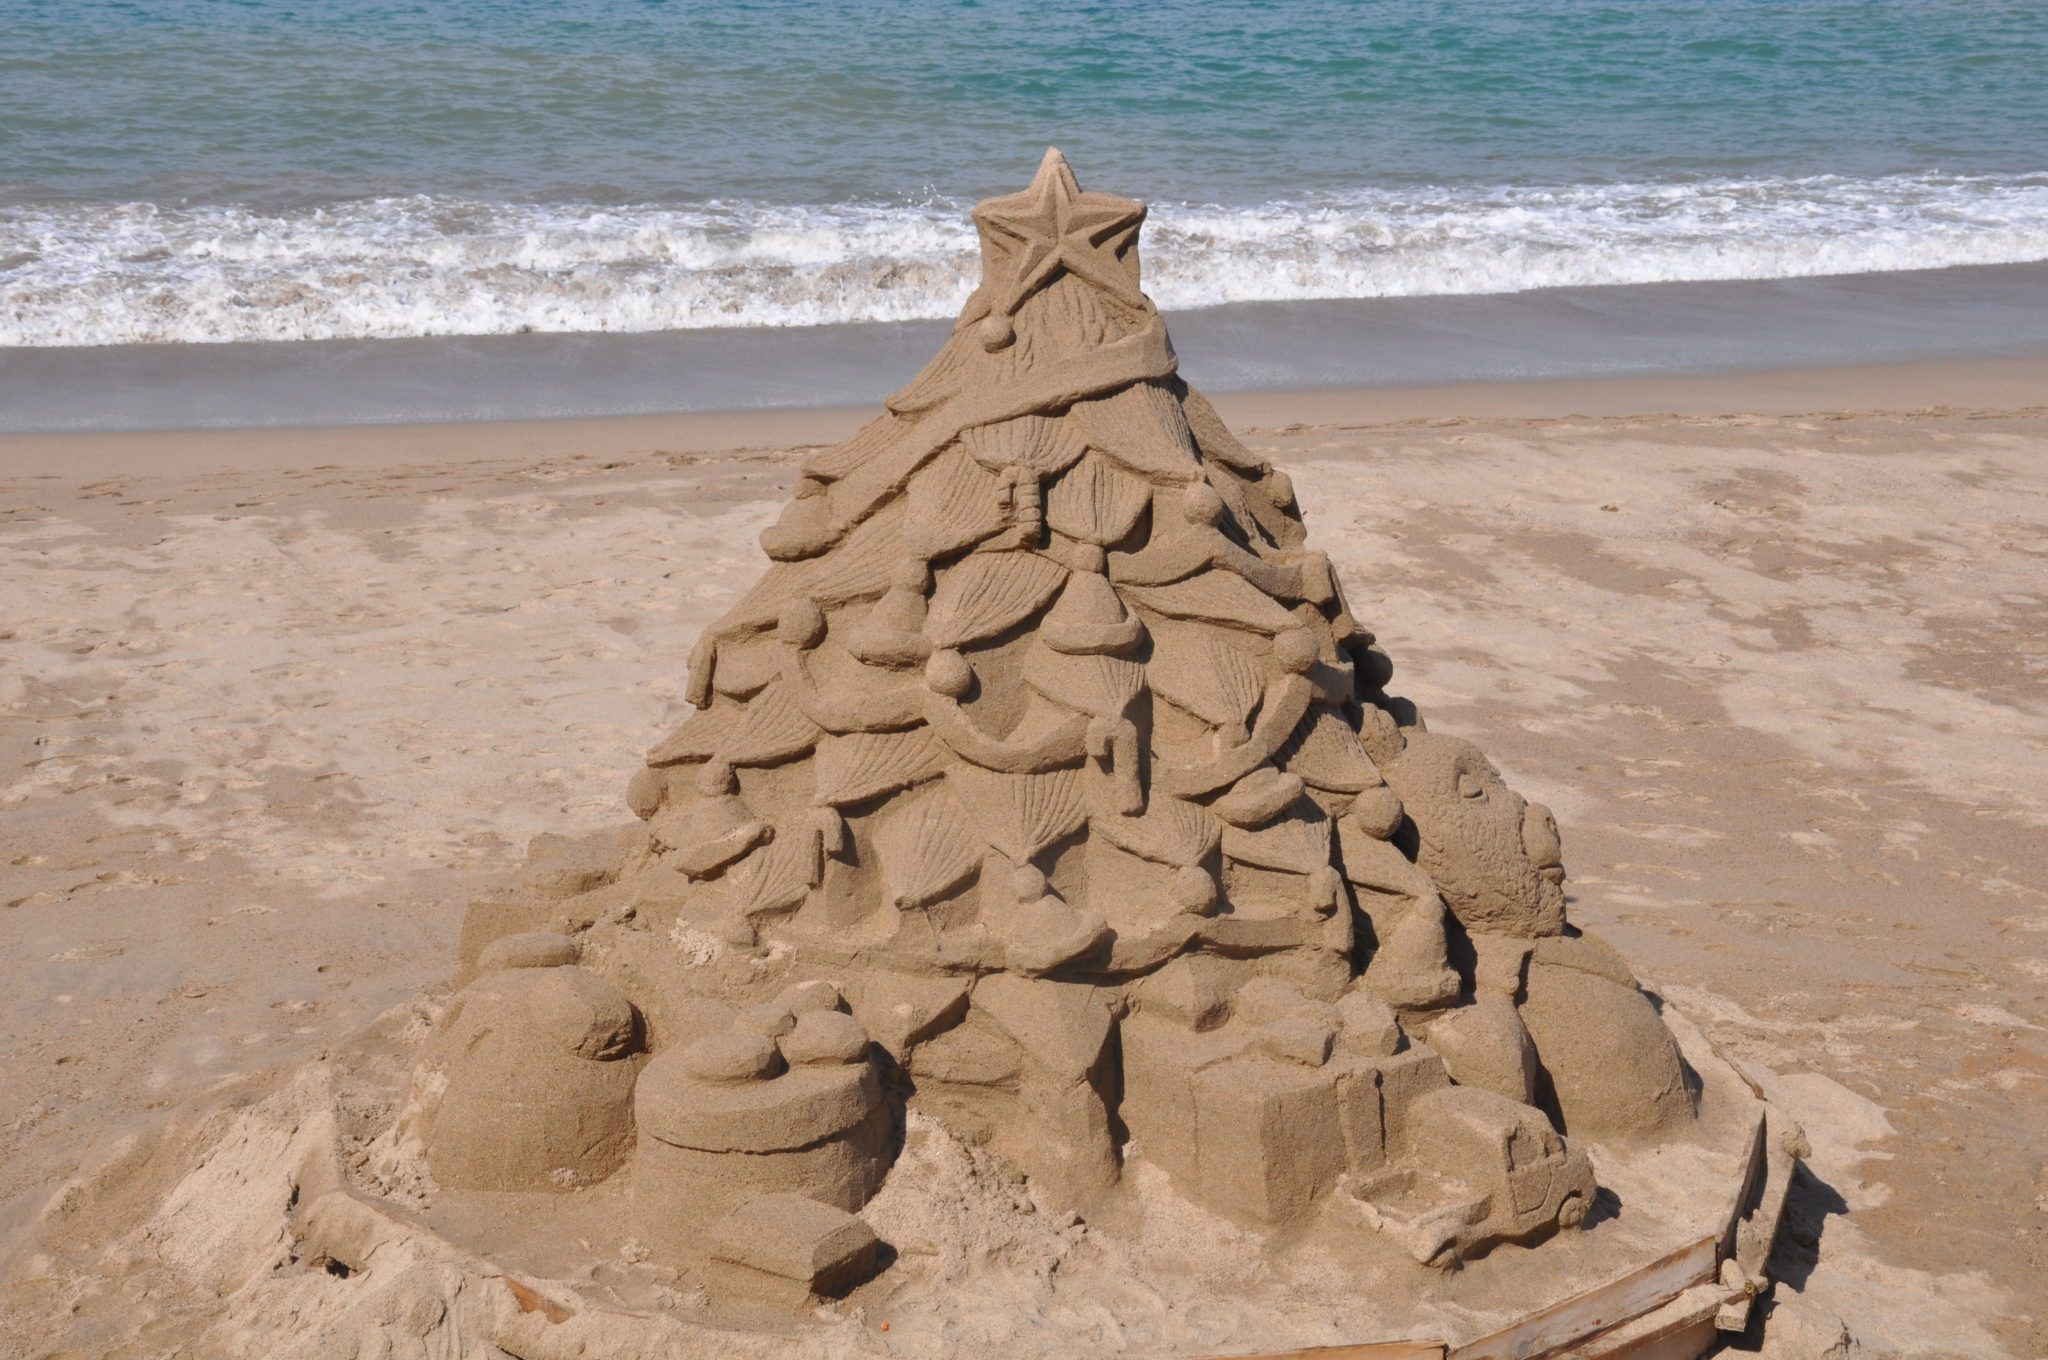 Sand sculpture of a Christmas tree on the beach in Mexico